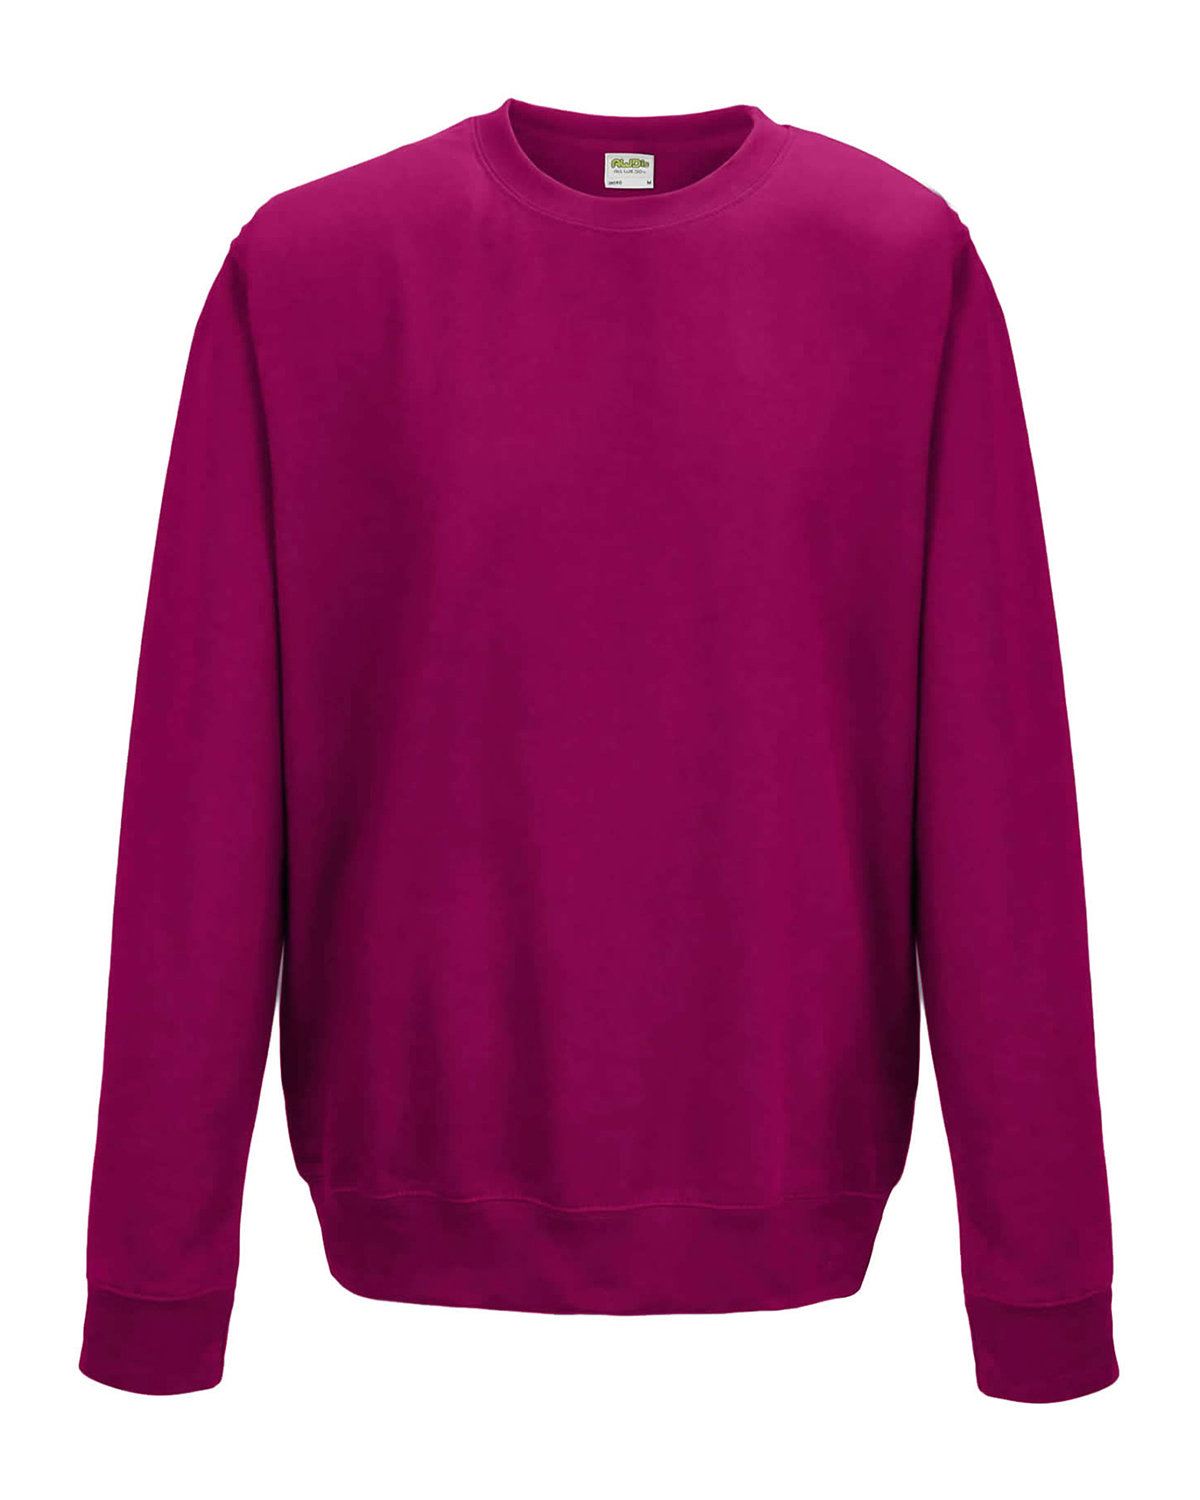 Just Hoods By AWDis Adult 80/20 Midweight College Crewneck Sweatshirt HOT PINK